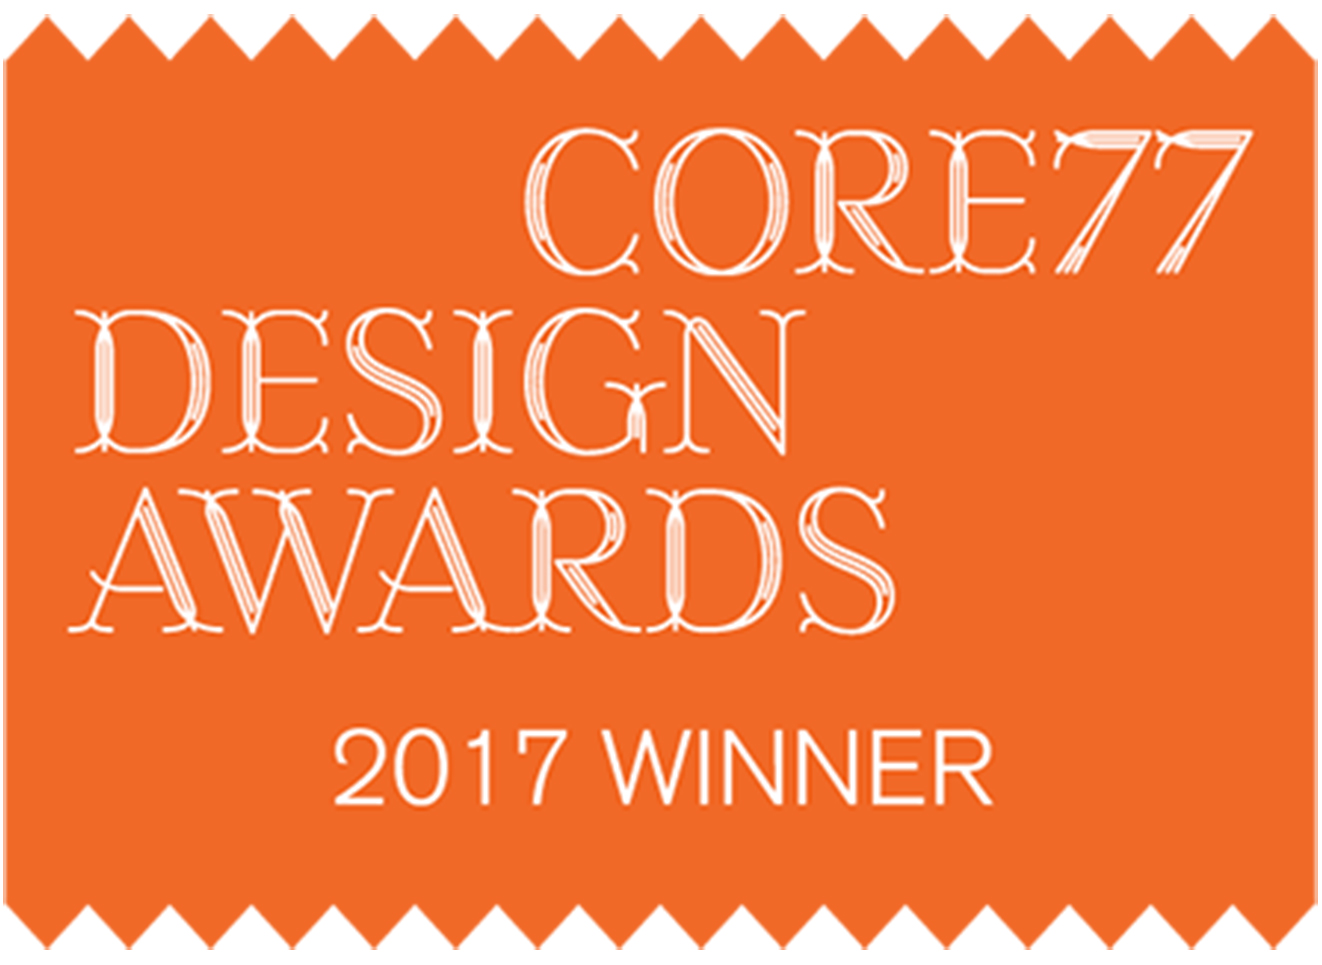 Core77_award winner.jpg